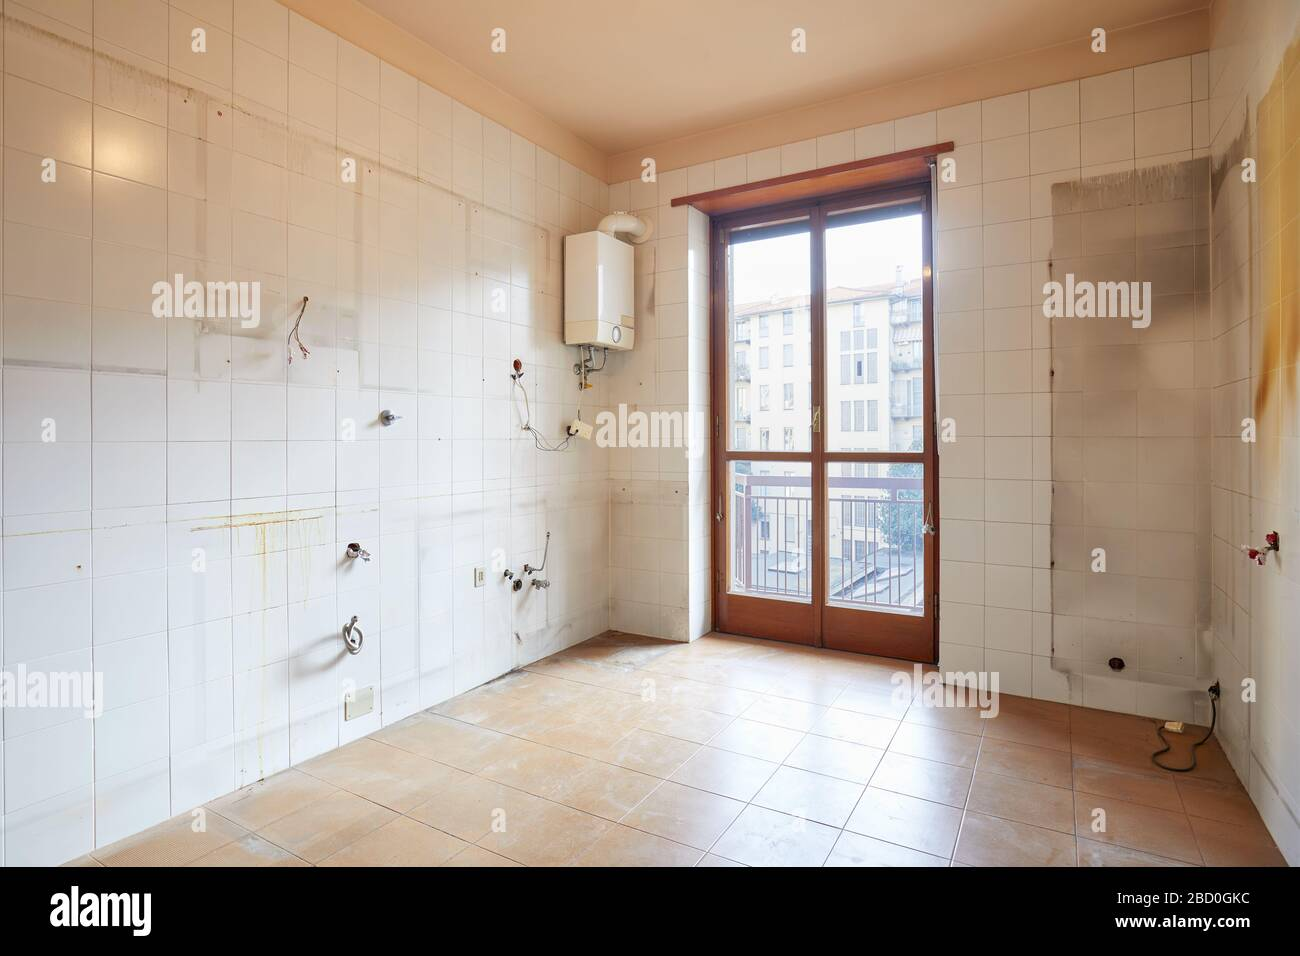 Old Tiles Kitchen High Resolution Stock Photography And Images Alamy